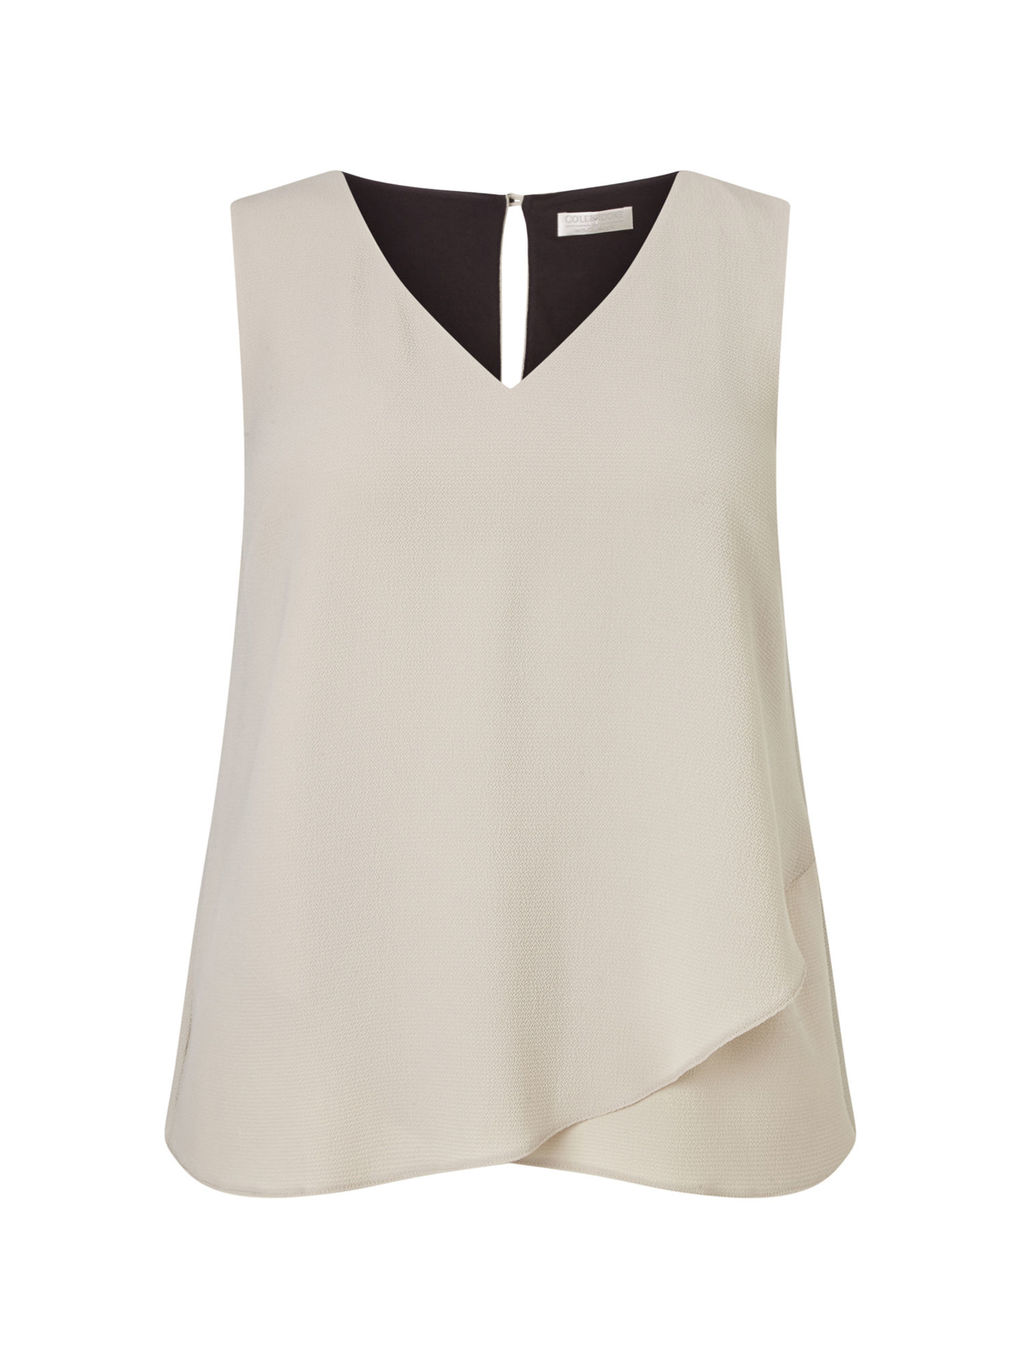 Woven Jersey Layered Top - neckline: v-neck; pattern: plain; sleeve style: sleeveless; predominant colour: stone; length: standard; style: top; fibres: polyester/polyamide - stretch; fit: body skimming; back detail: keyhole/peephole detail at back; sleeve length: sleeveless; texture group: crepes; pattern type: fabric; occasions: creative work; season: s/s 2016; wardrobe: basic